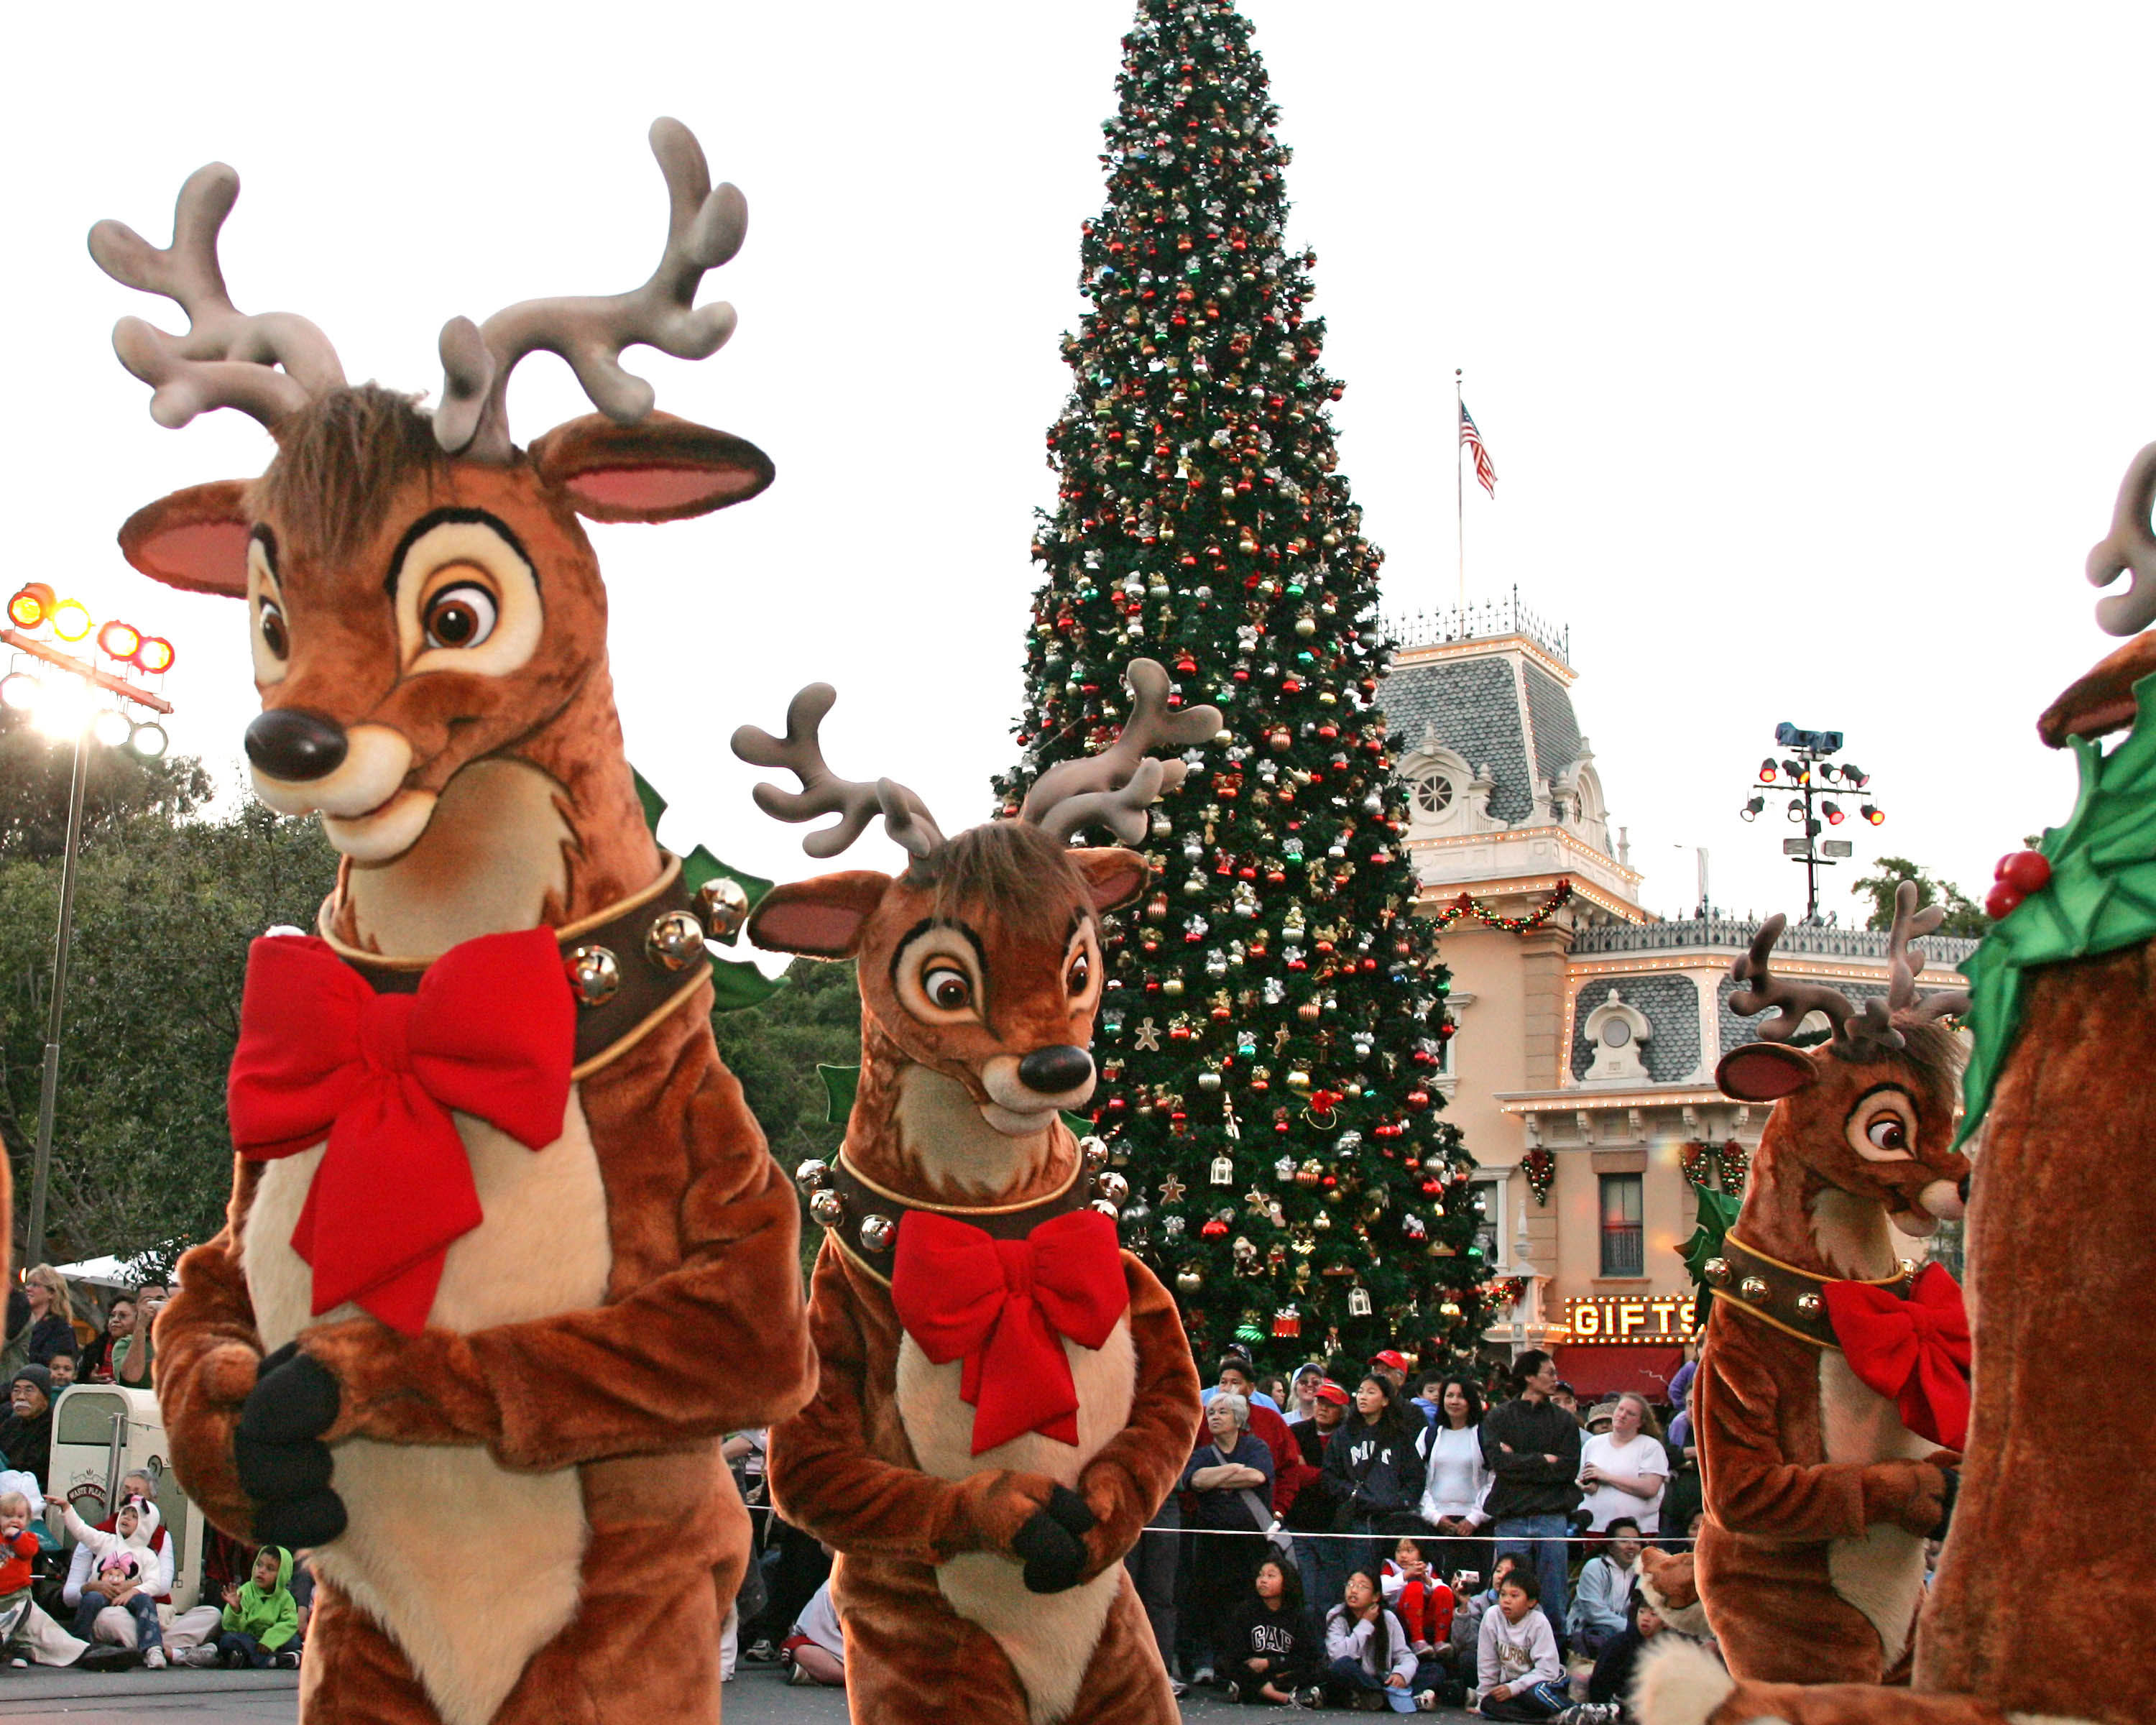 Christmas Fantasy Parade (1104-DL-9999)